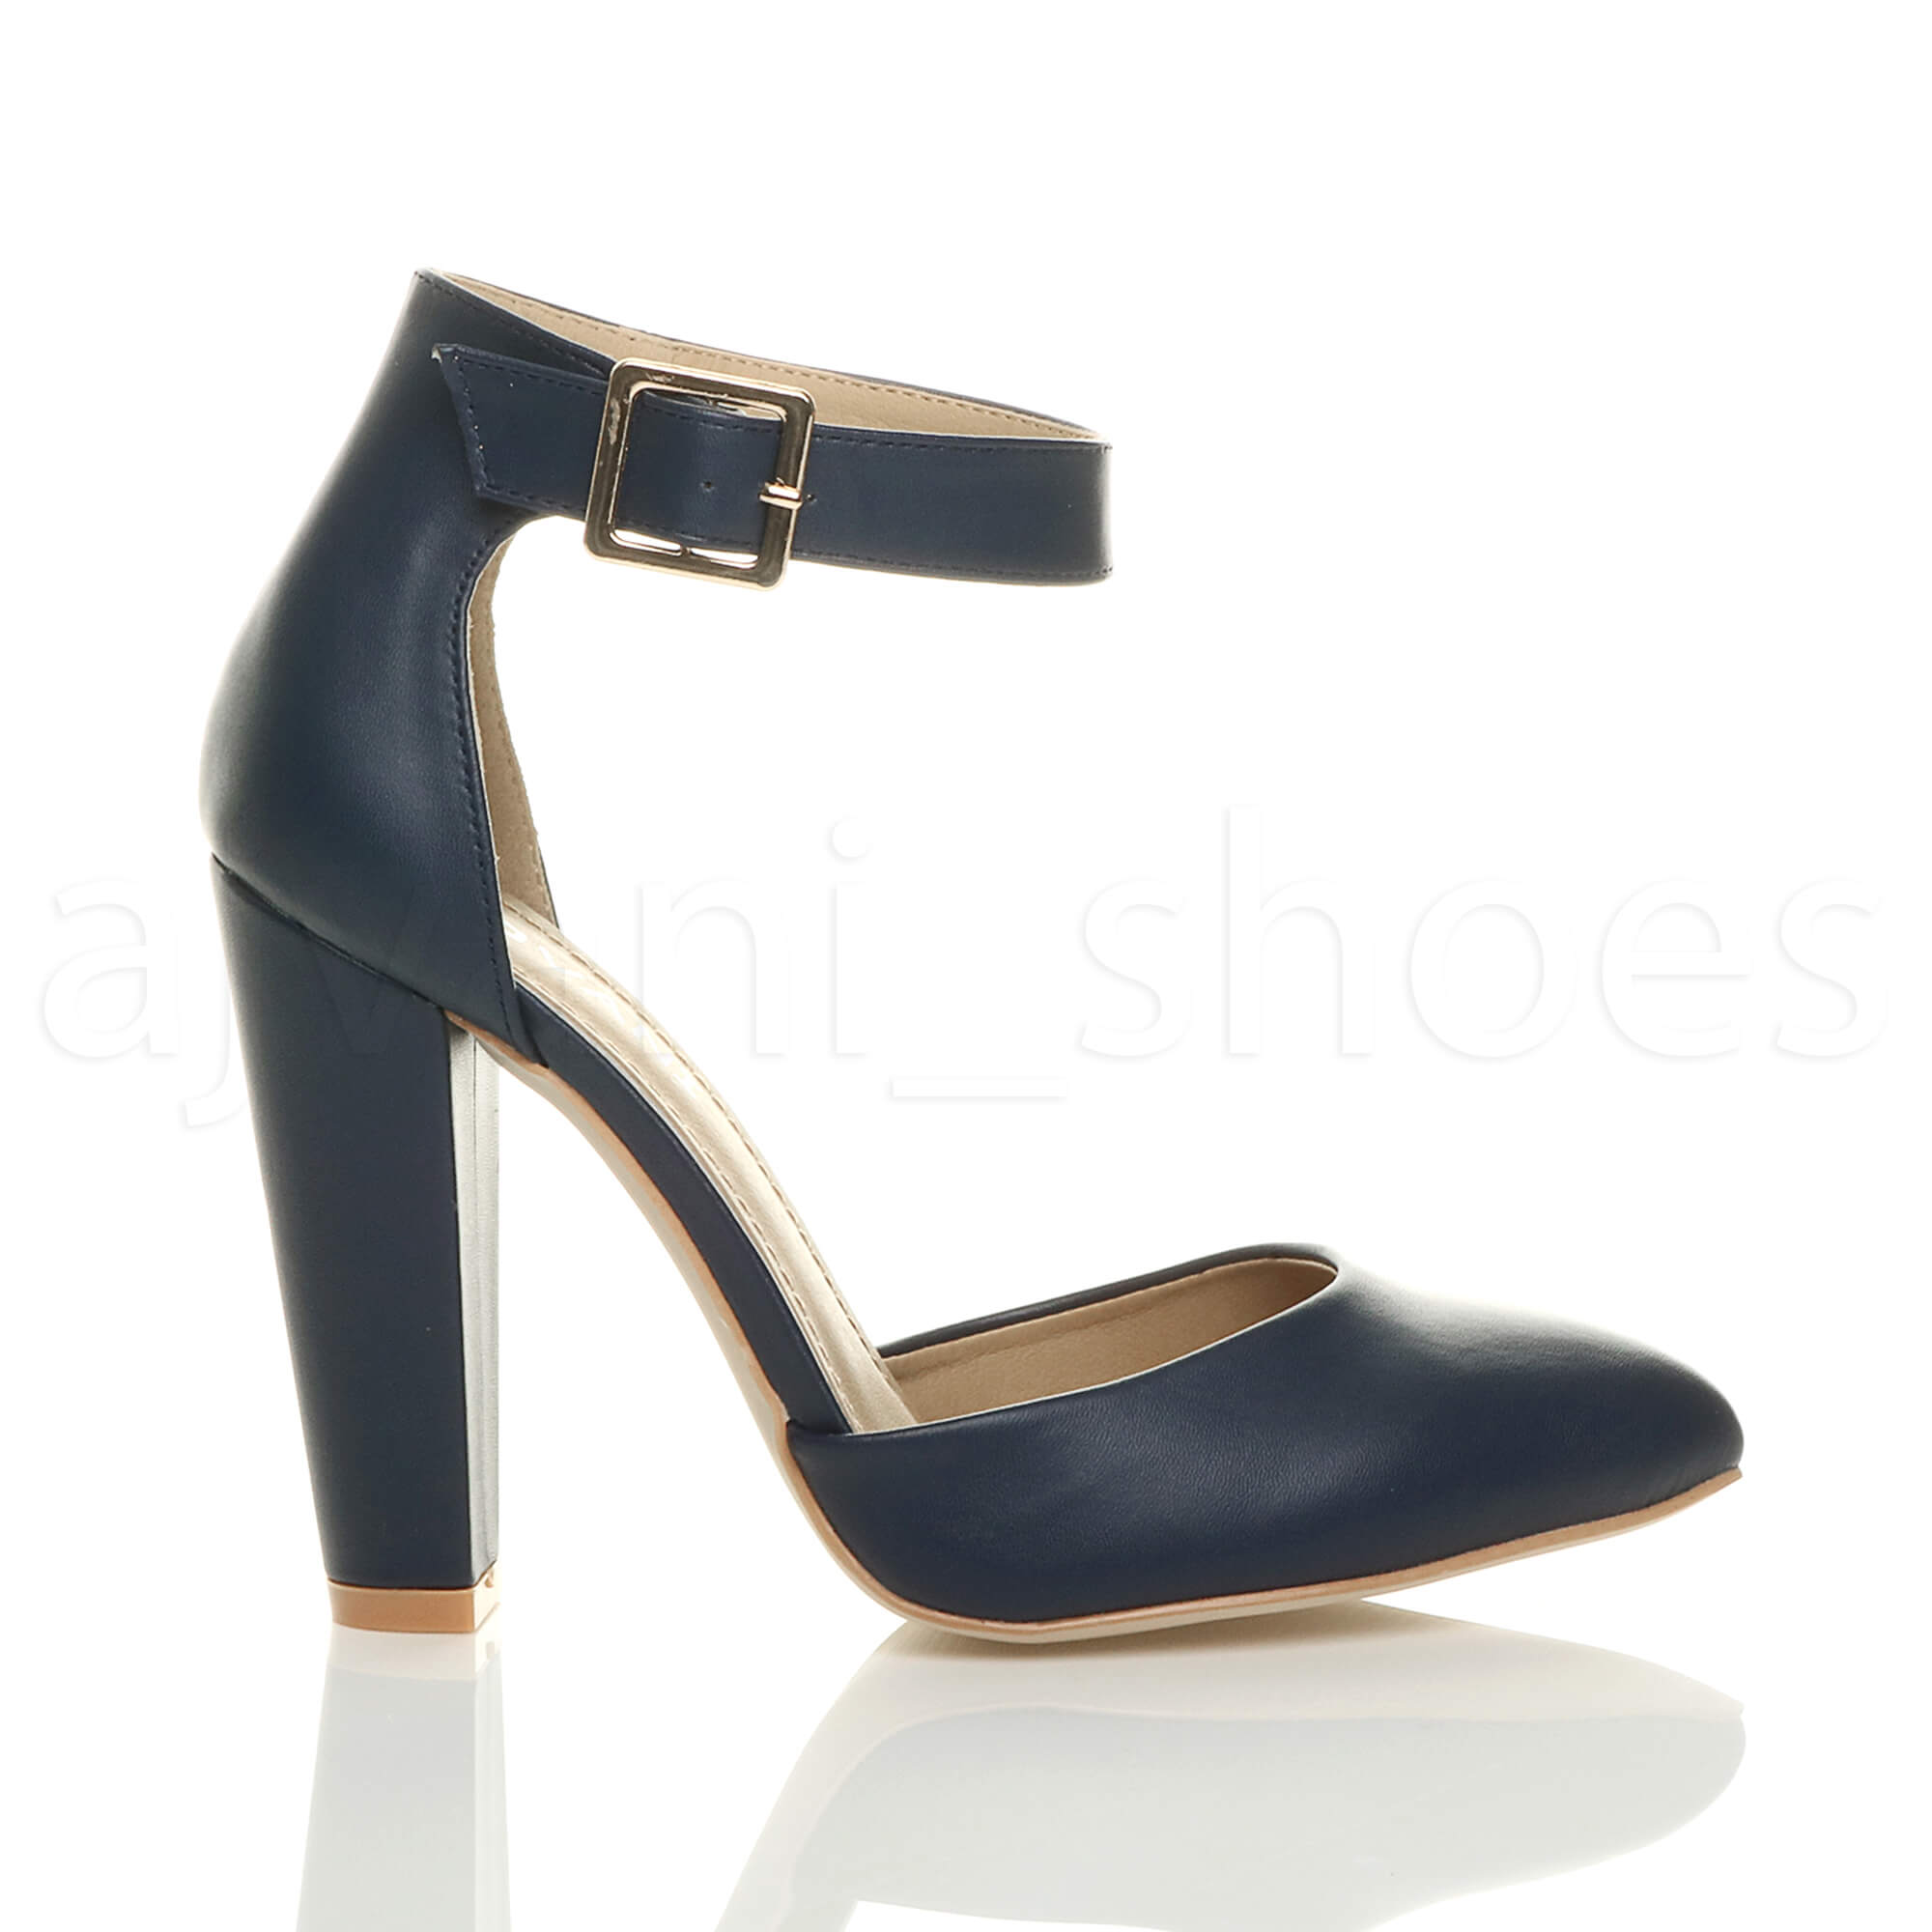 WOMENS-LADIES-HIGH-BLOCK-HEEL-ANKLE-STRAP-BUCKLE-POINTED-COURT-SHOES-SIZE thumbnail 66